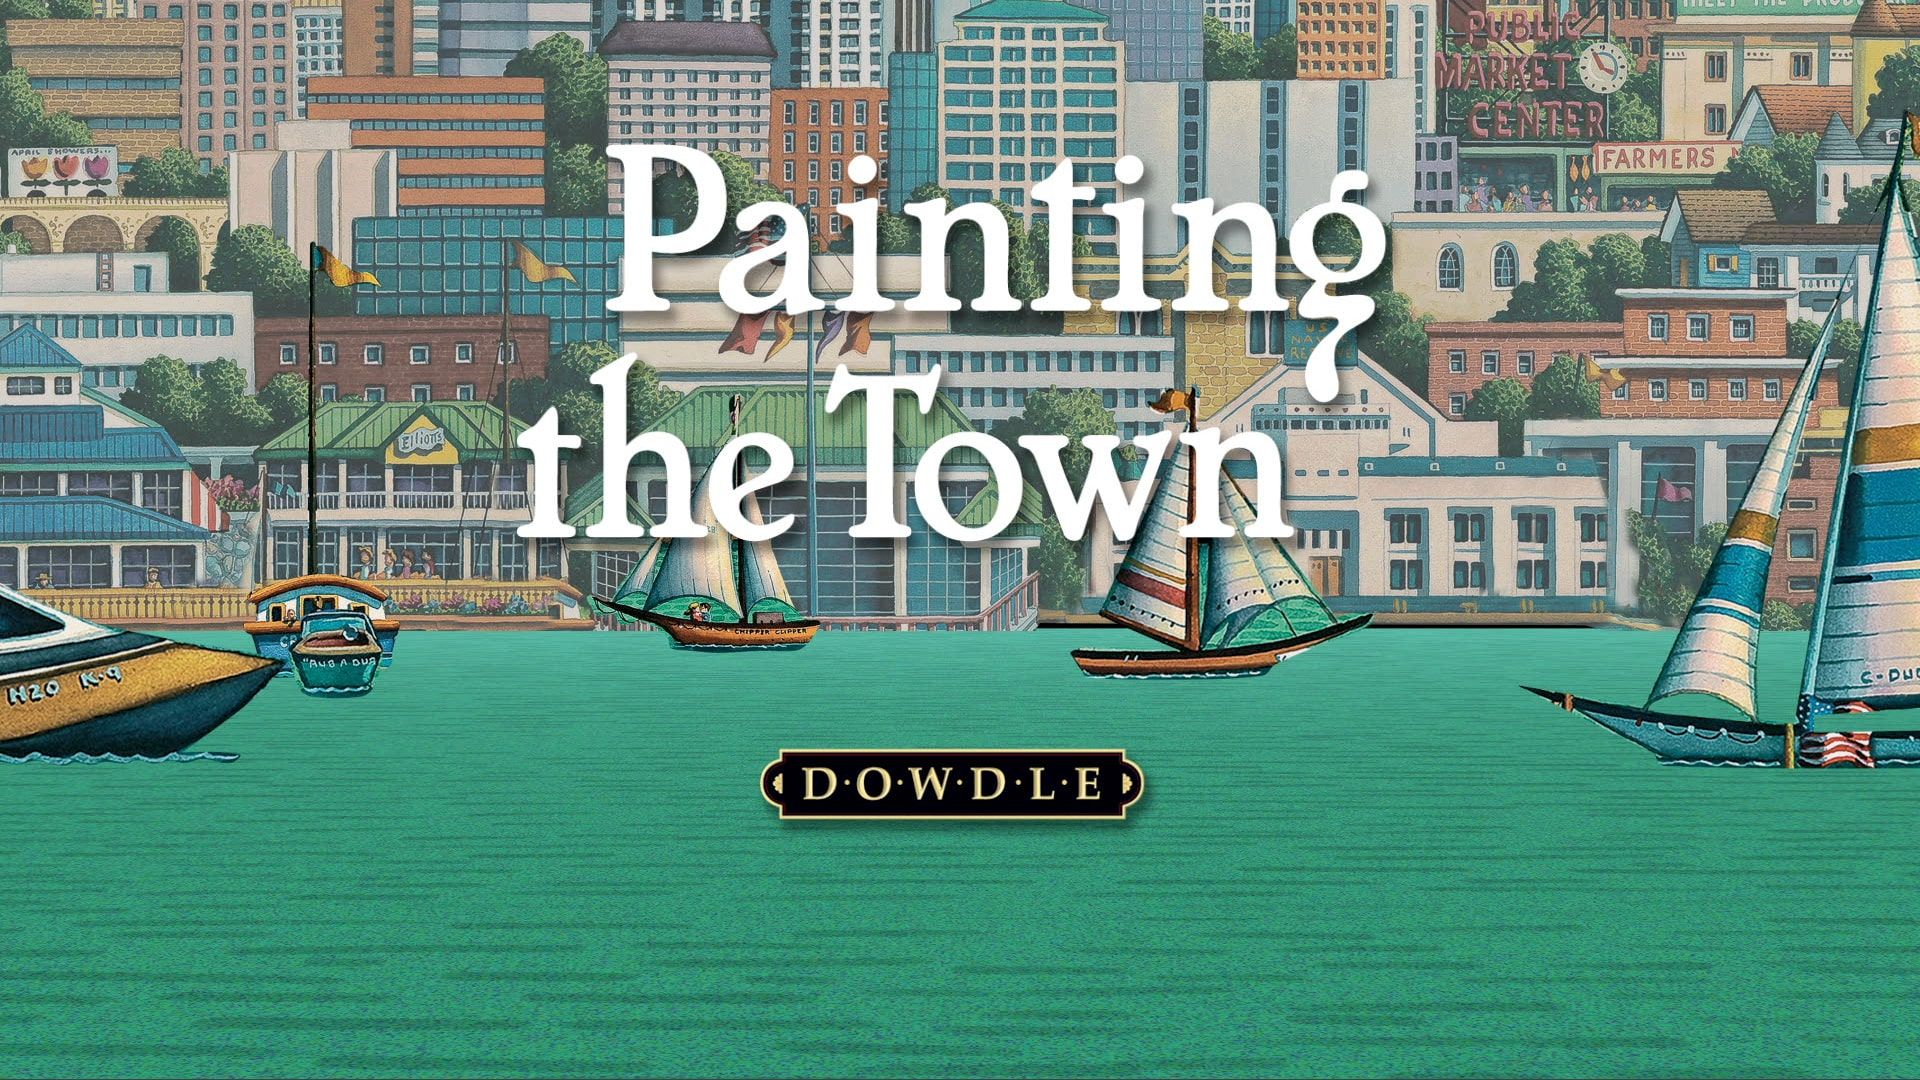 Discover the secrets of cities all over the globe with renowned artist Eric Dowdle as your tour guide! You won't want to miss Eric's journey as he travels from cities like Portland, Oregon to Cancun, Mexico, painting each town along the way.